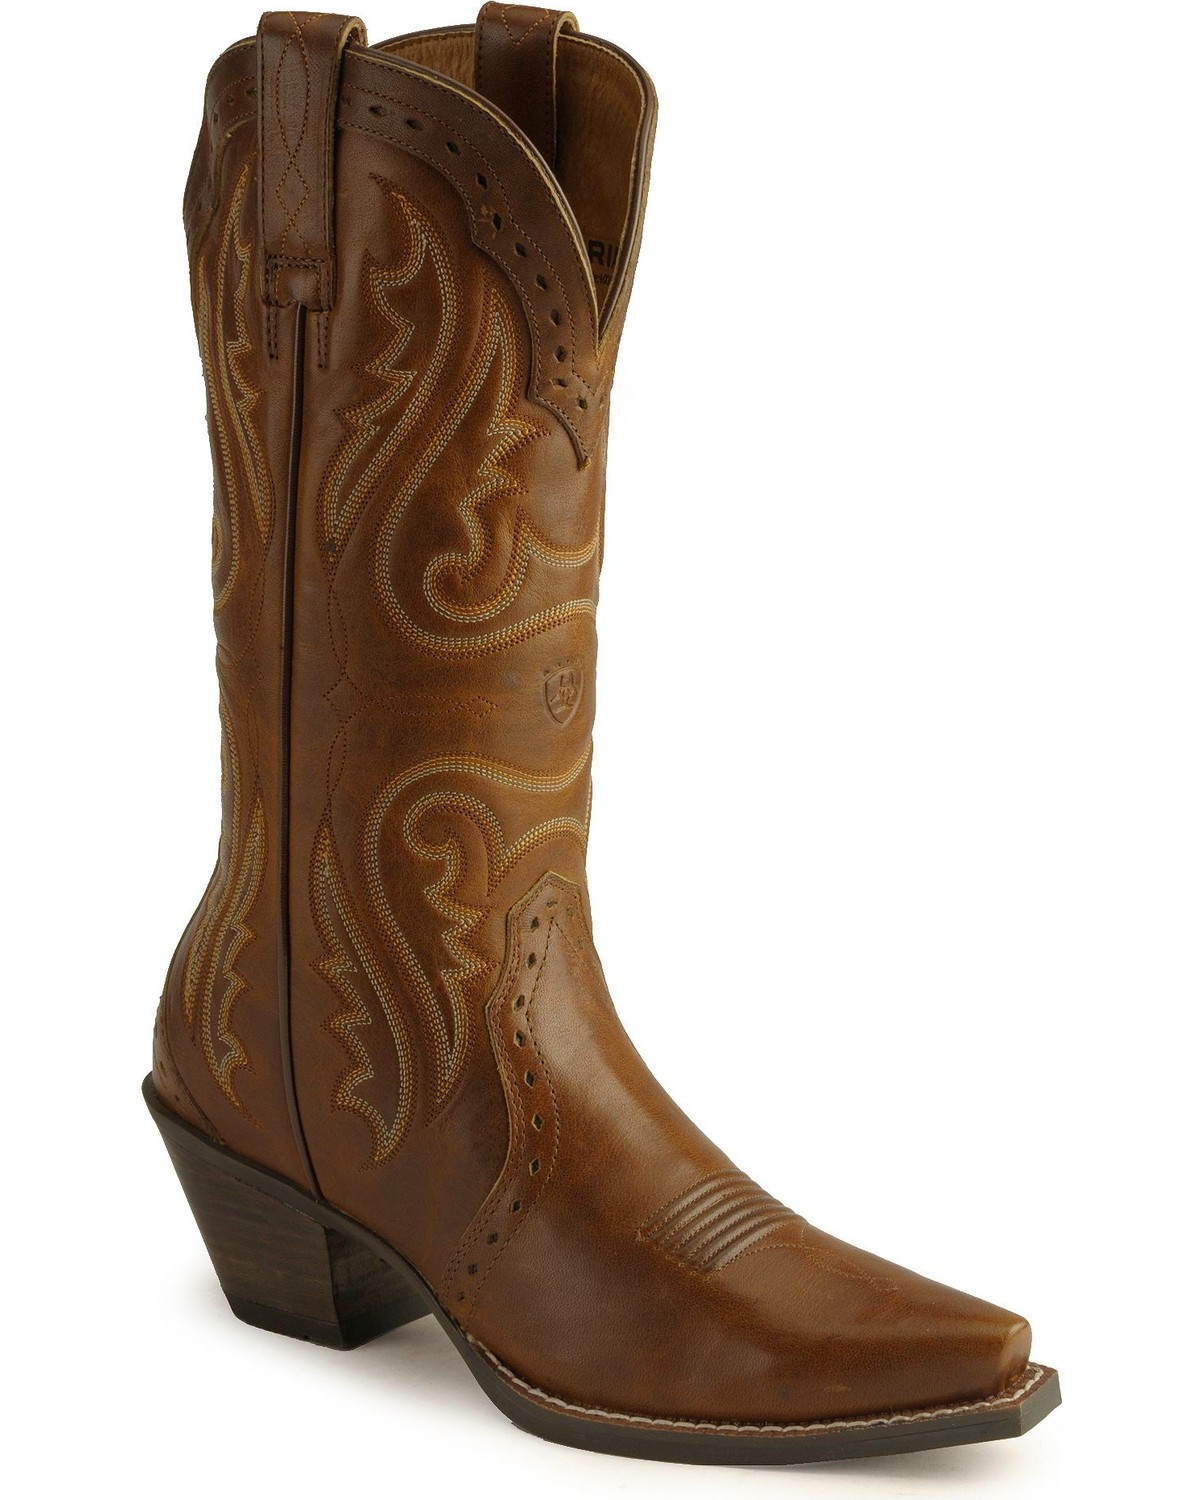 0d60c84a83a Ariat Women's Heritage Vintage Western Boots